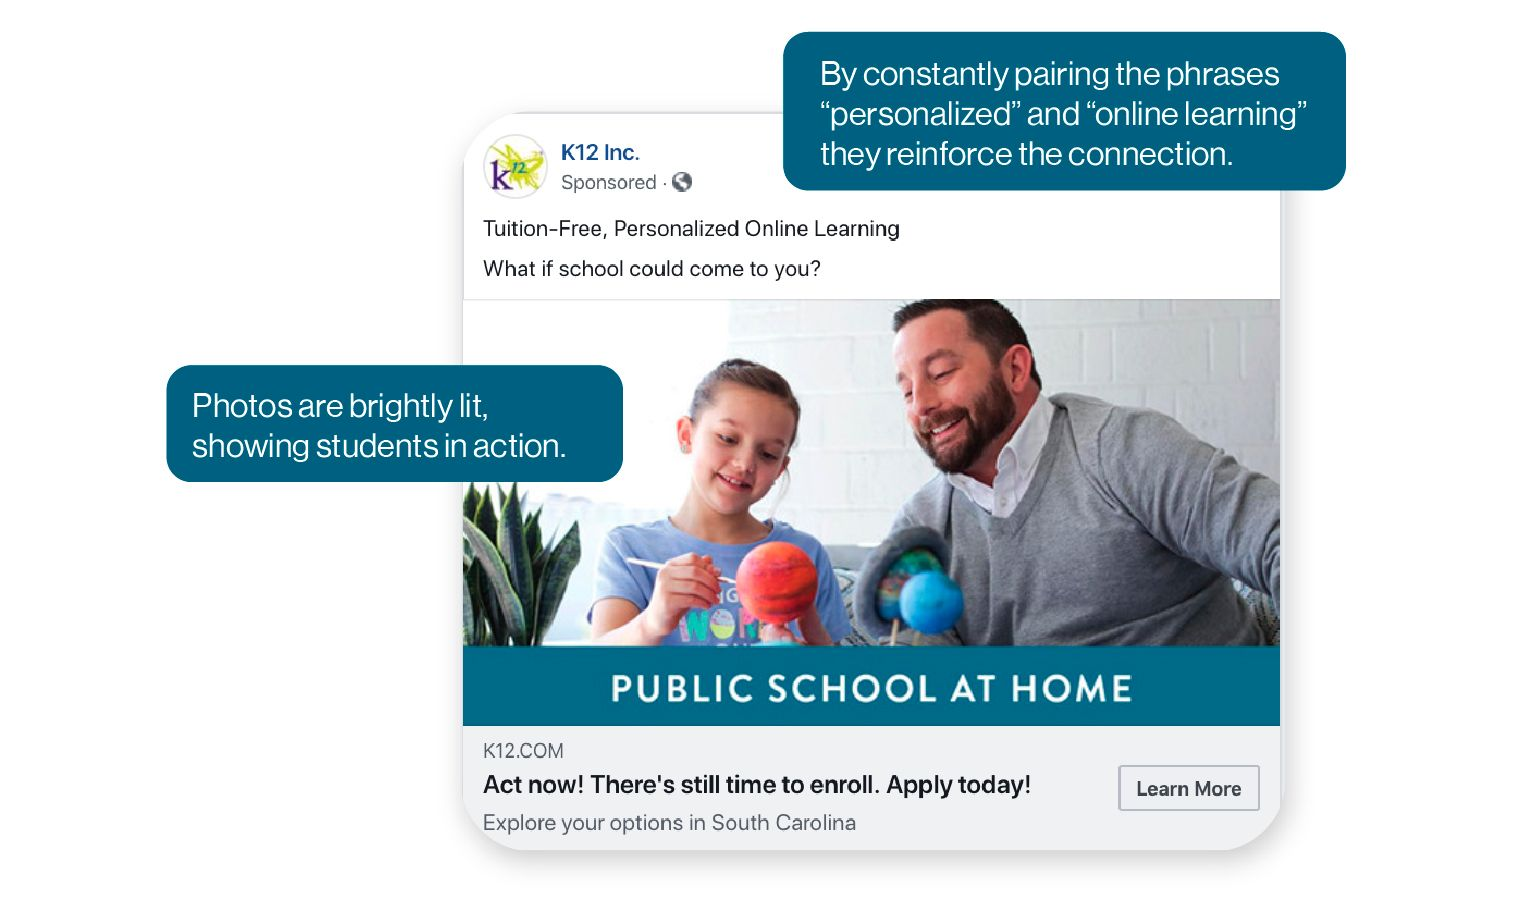 Image: K12 Inc. Ad example showing how K12 constantly pairs the phrases